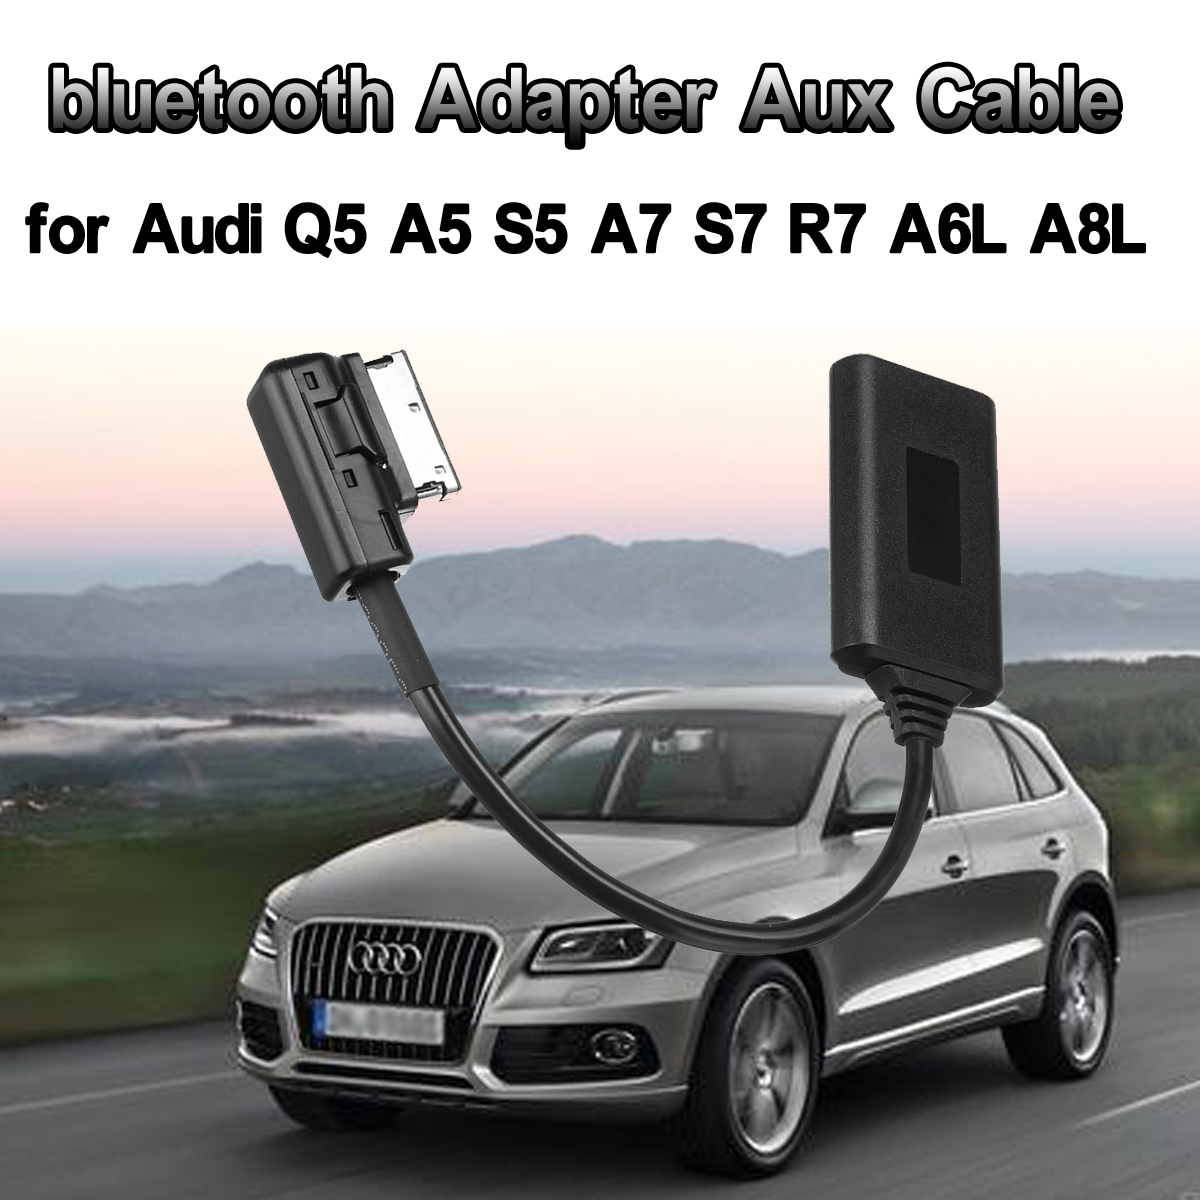 AMI MMI bluetooth ModuleAdapter Aux Cable Wireless Audio Input Aux Radio Media Interface For Audi Q5 A5 A7 R7 S5 Q7 A6L A8L A4L|Bluetooth Car Kit| |  - title=